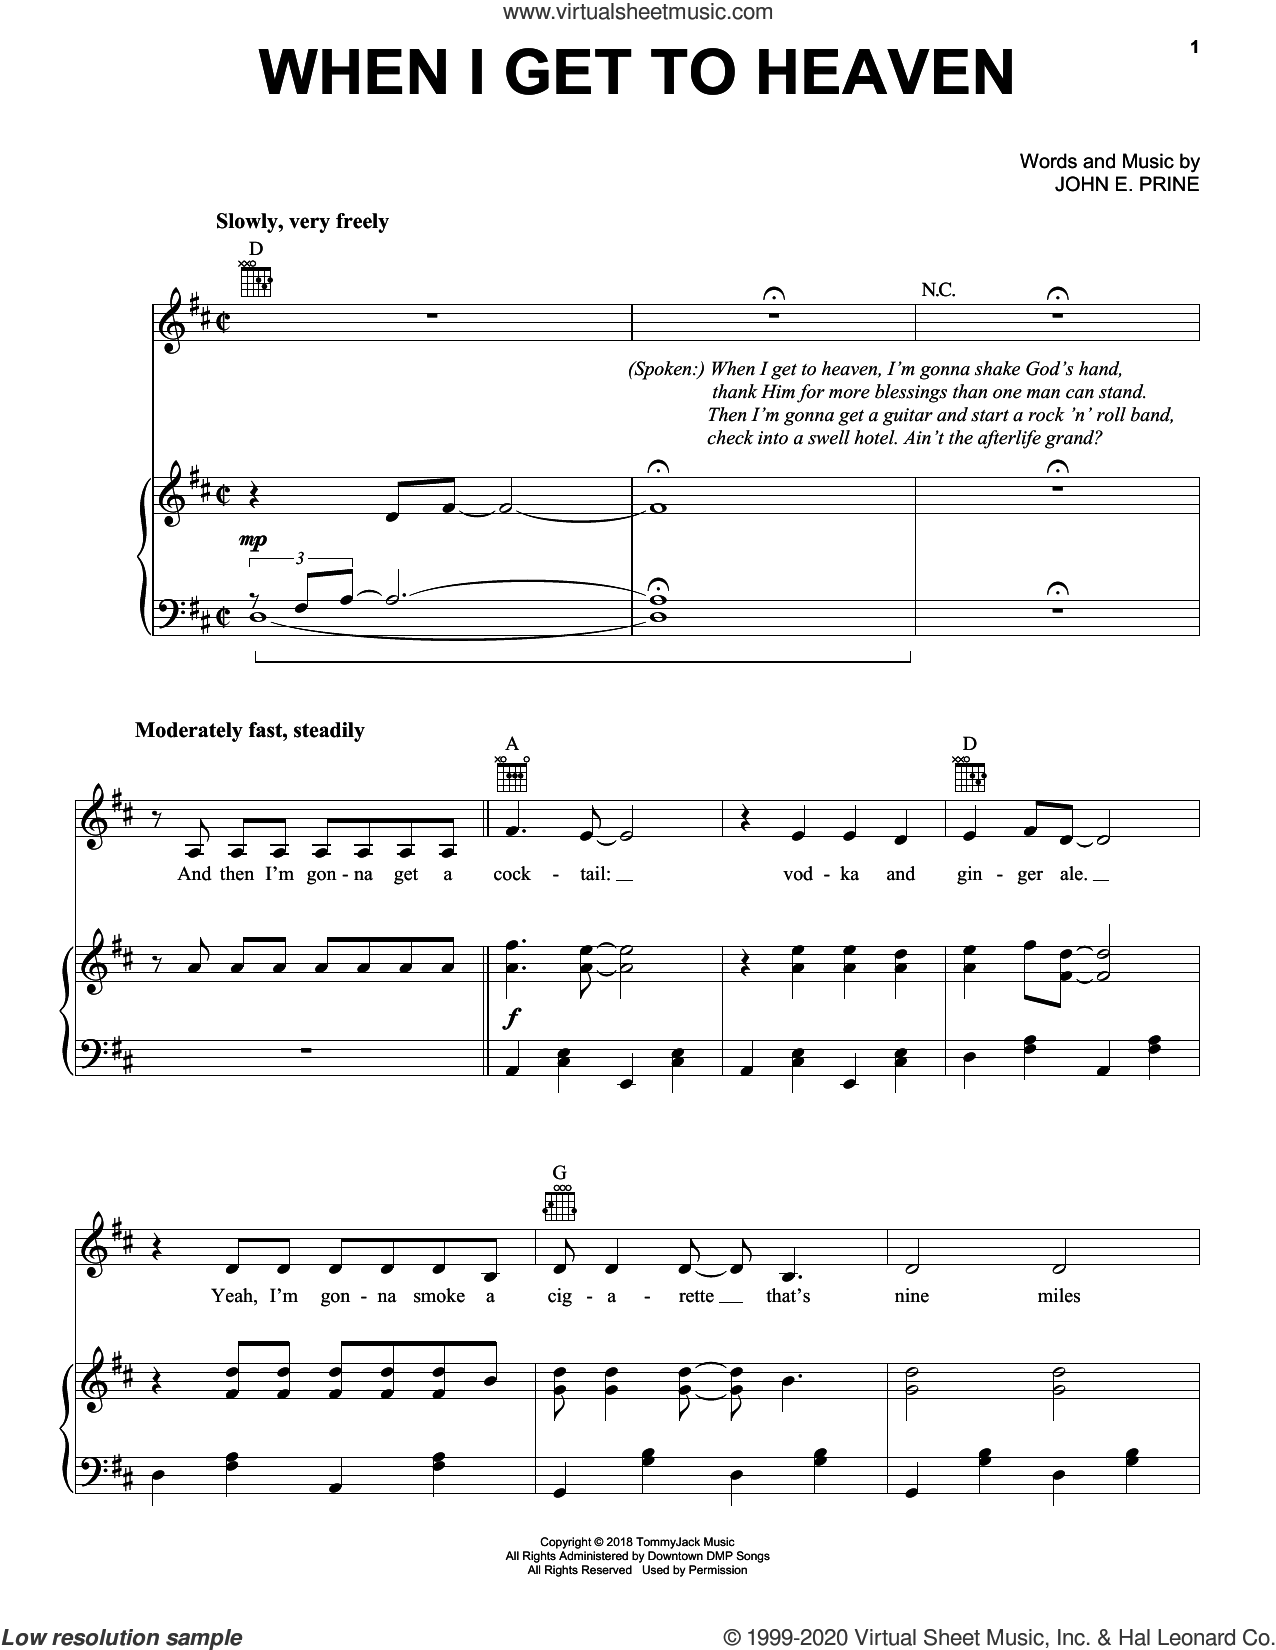 When I Get To Heaven sheet music for voice, piano or guitar by John Prine and John E. Prine, intermediate skill level